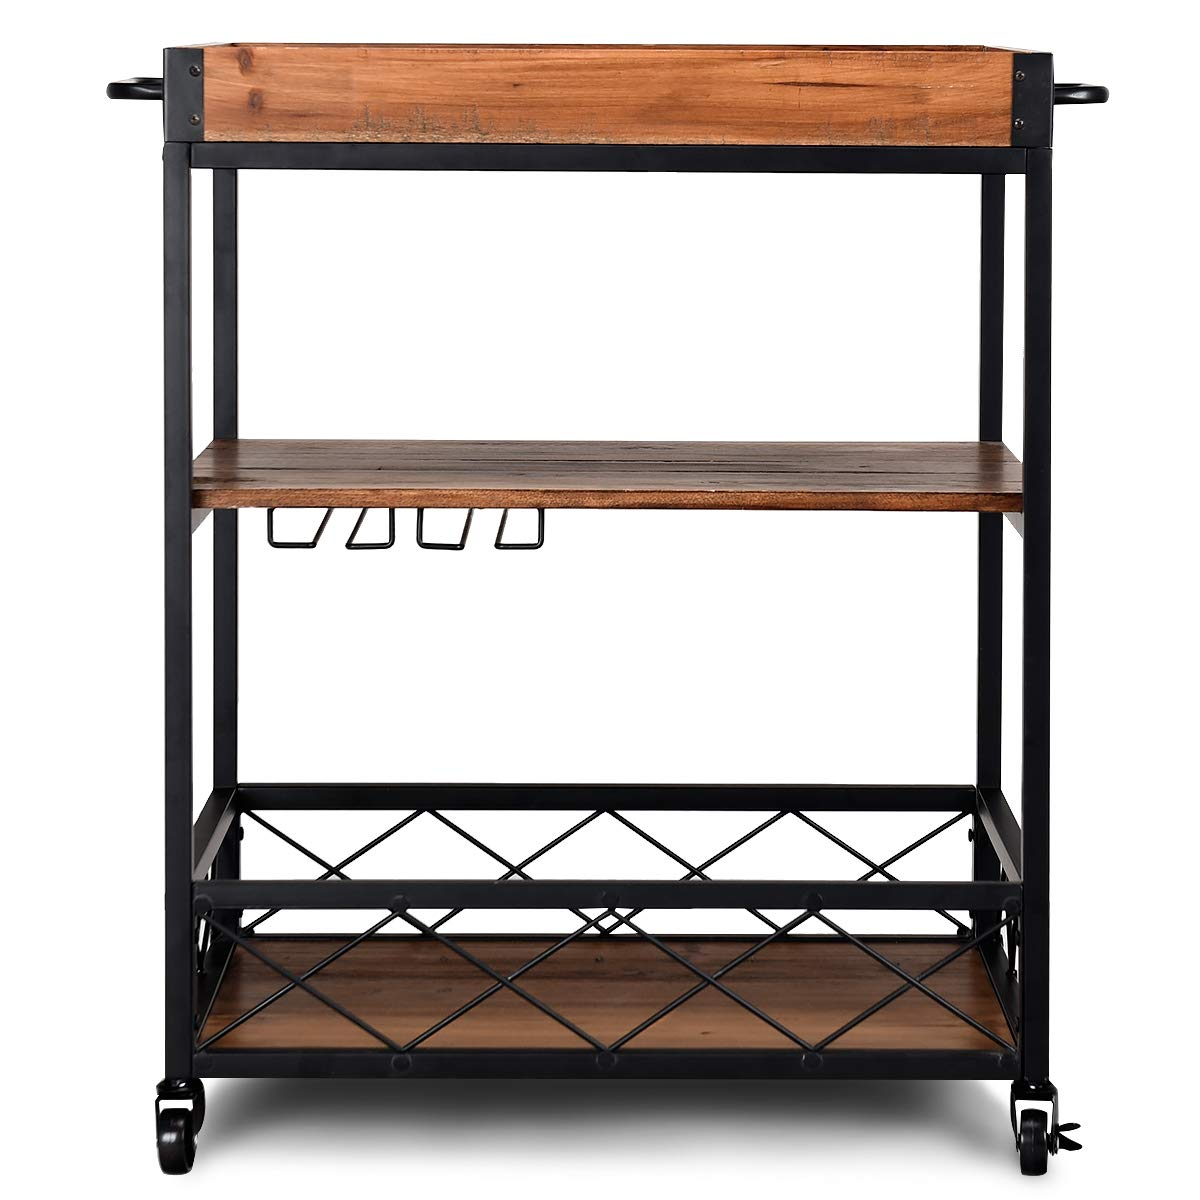 Giantex Kitchen Trolley Cart Island Rolling Serving Carts Utility Cart 3 Tier Storage Shelf with Glass Holde, Handle Racks, Lockable Caster Wheels Kitchen Carts Islands w/Removable Wood Box Container by Giantex (Image #9)